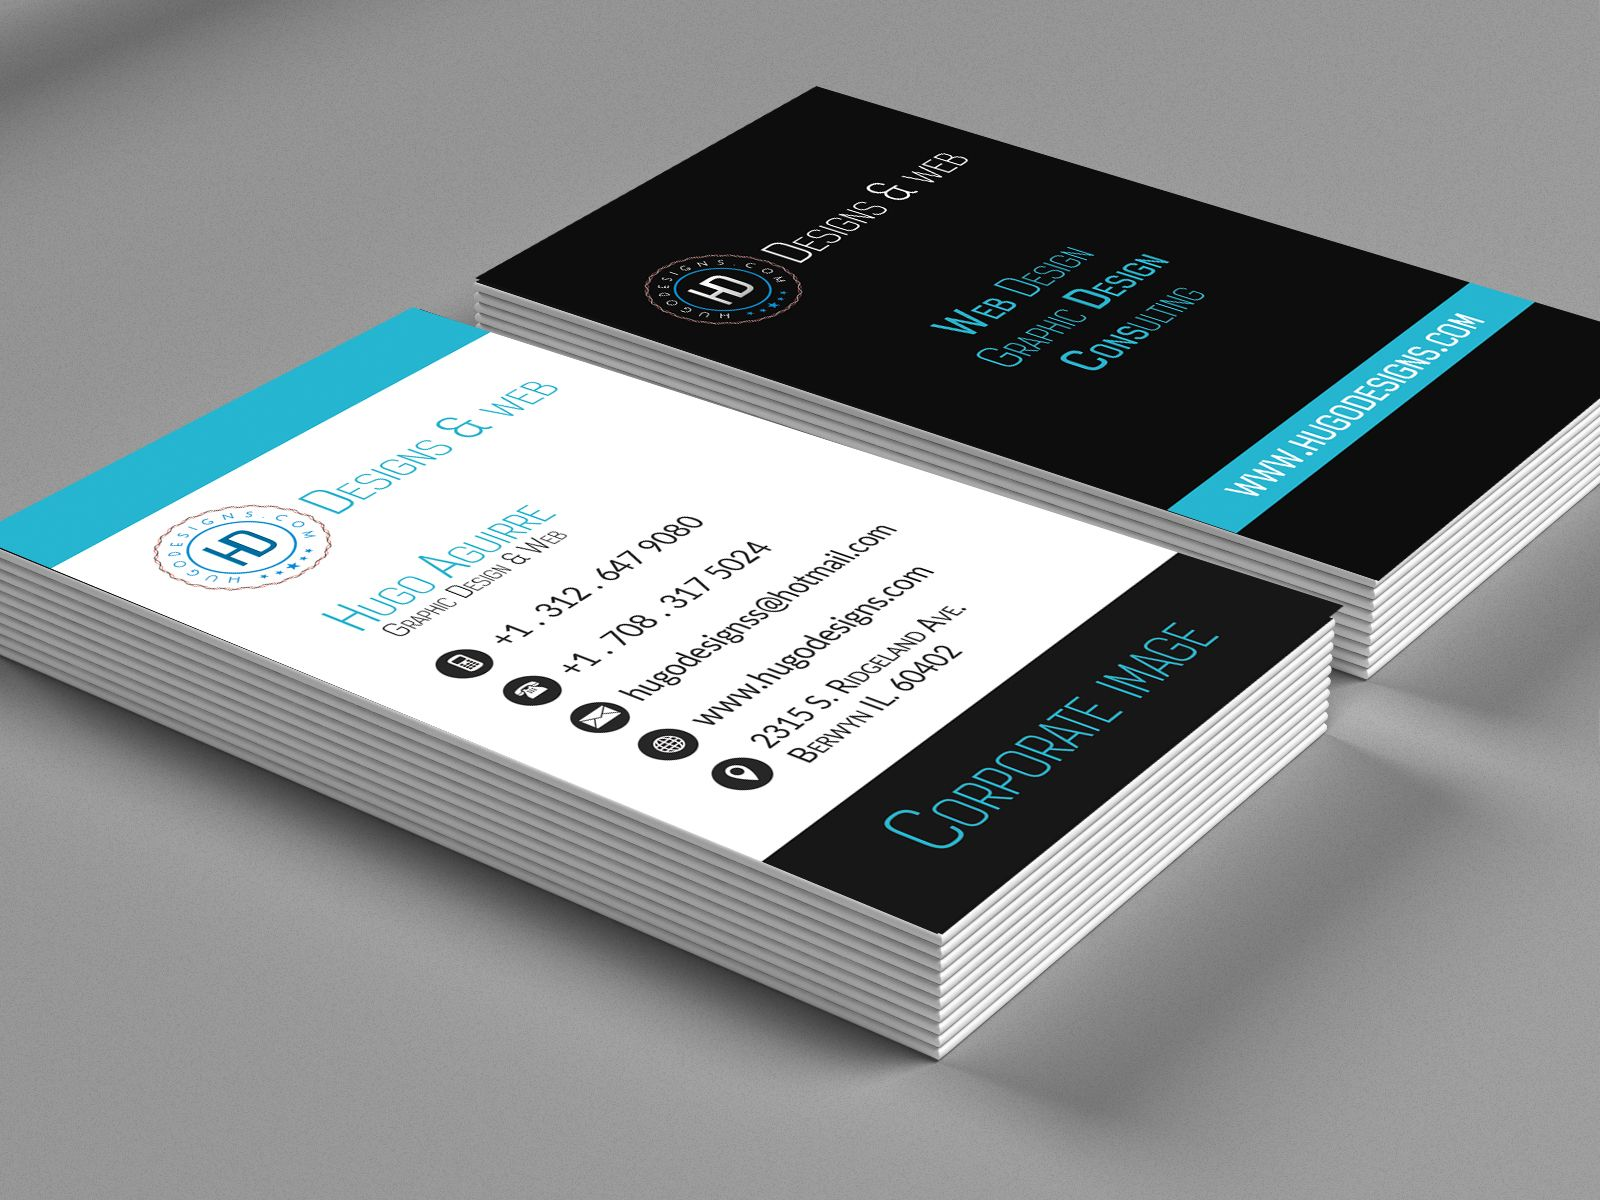 business card preview | Creative Studio Business Cards | Pinterest ...